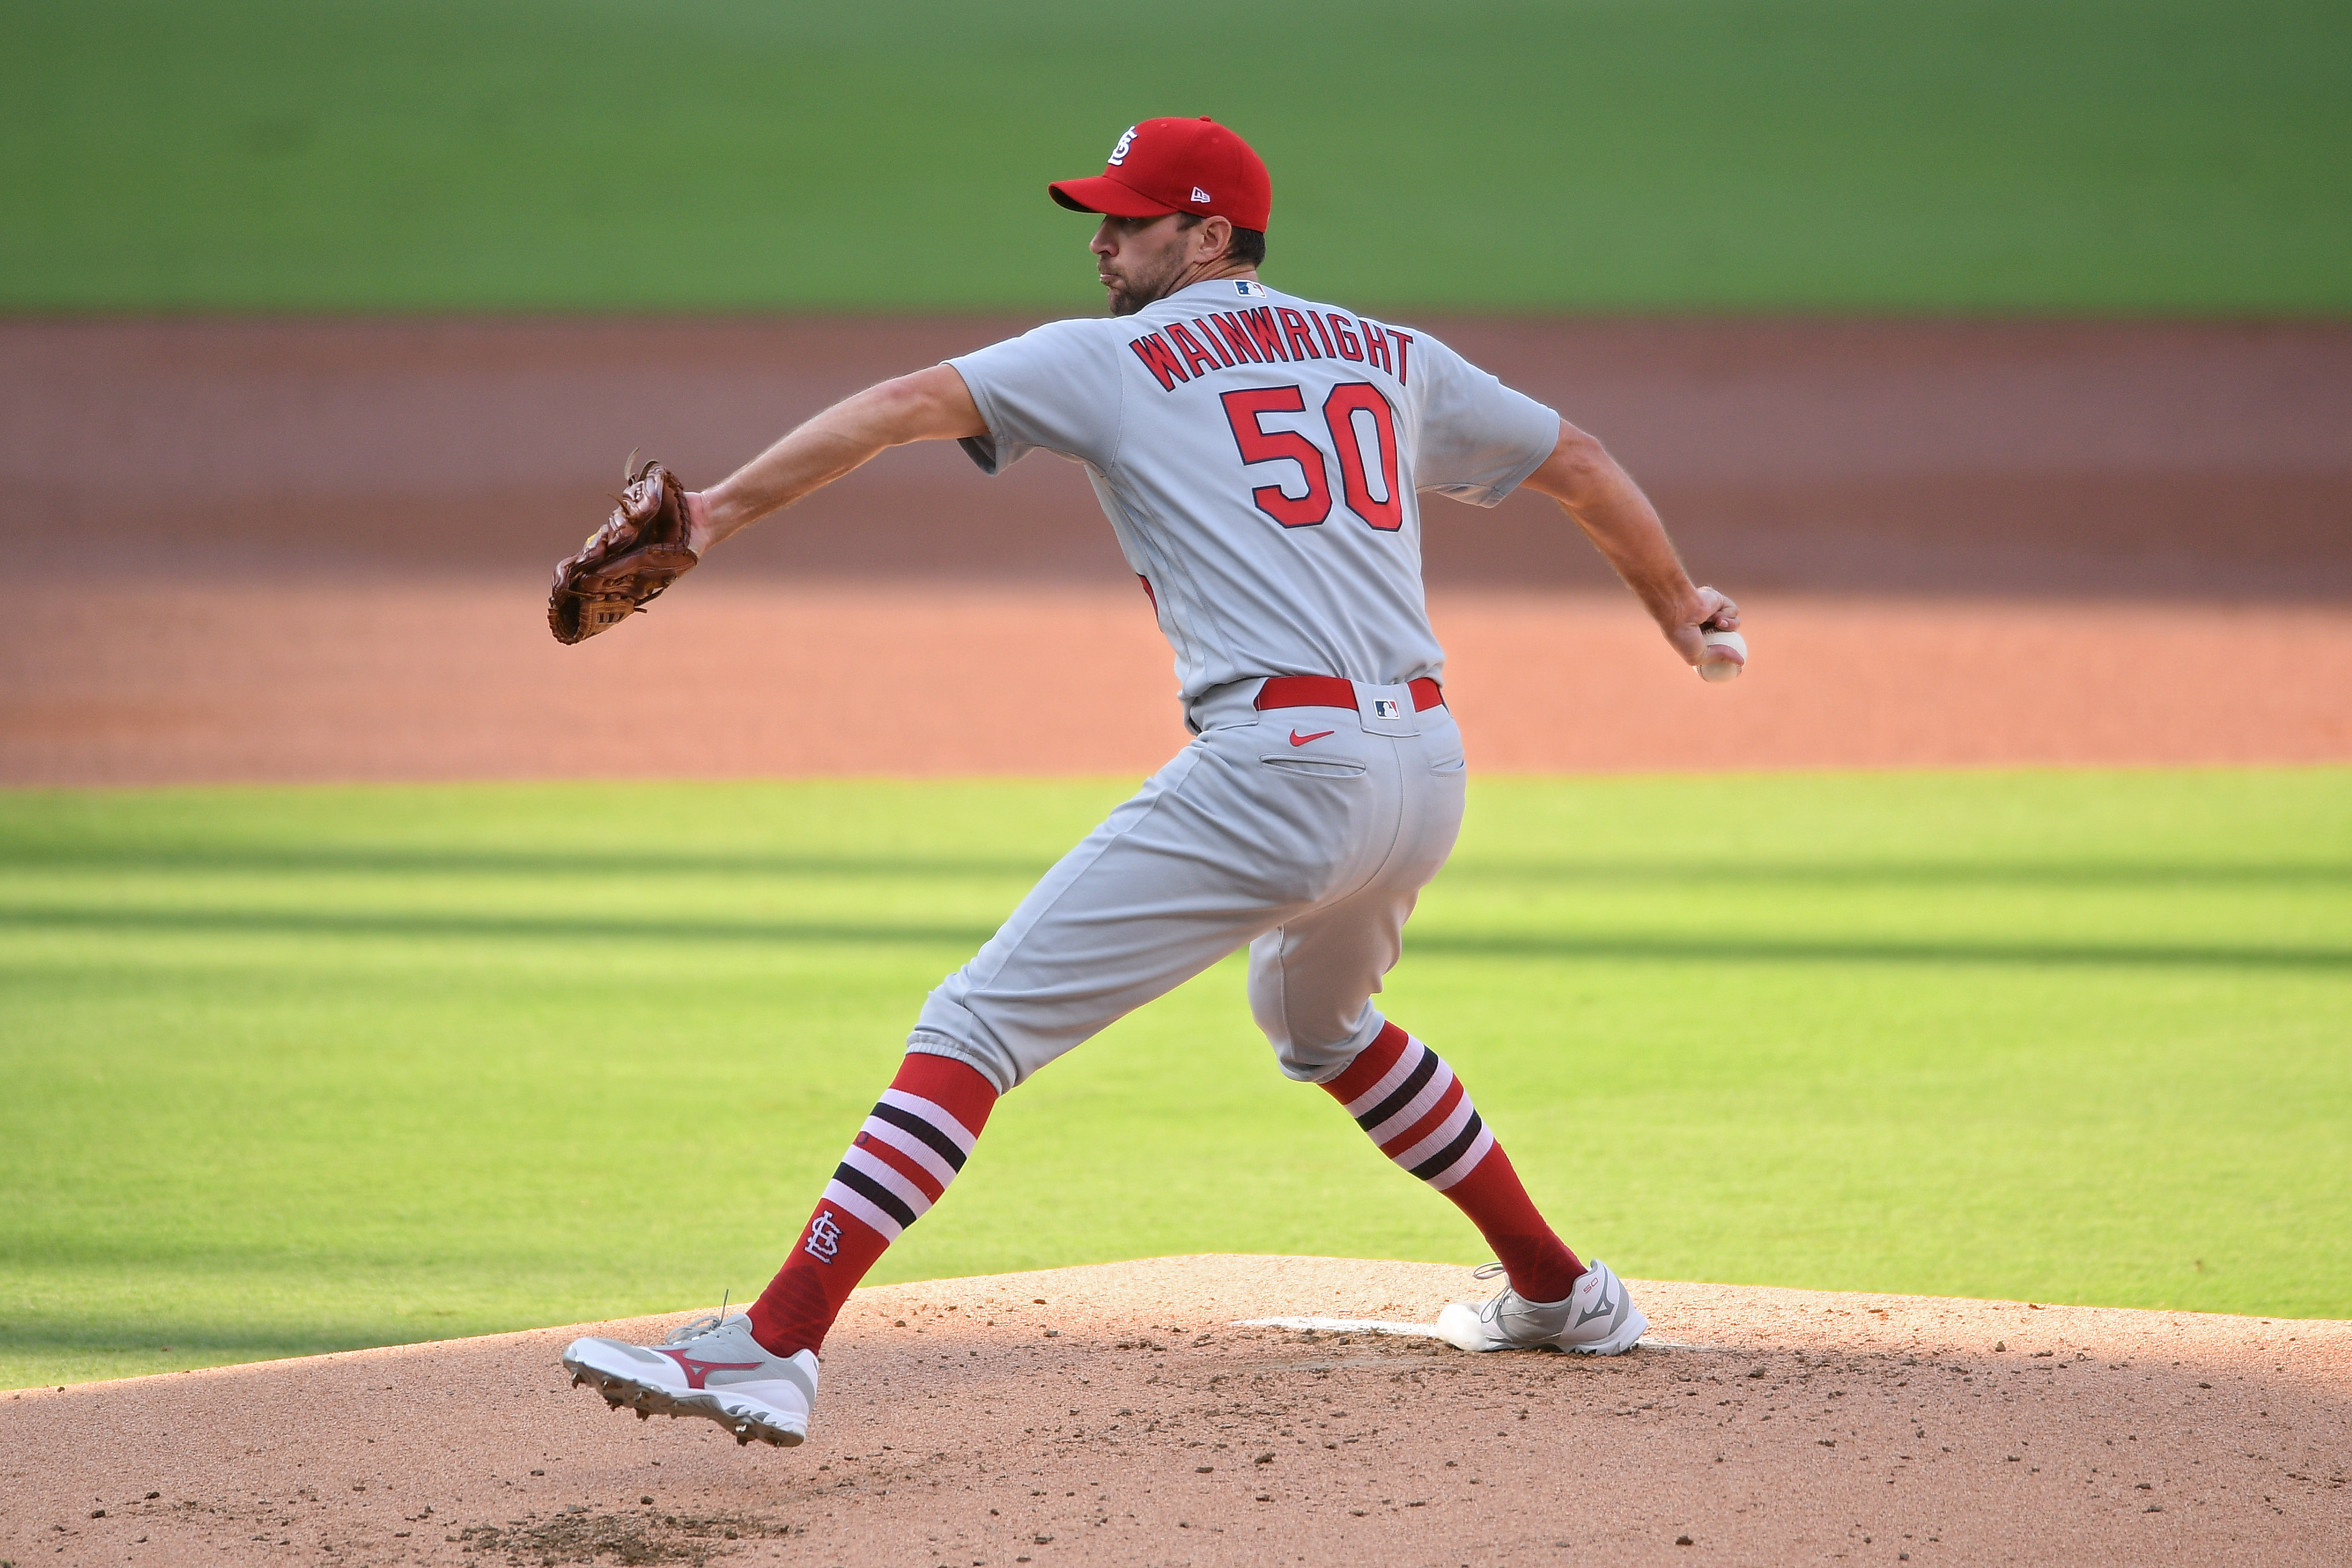 St. Louis Cardinals starting pitcher Adam Wainwright (50) pitches during the first inning against the San Diego Padresat Petco Park.